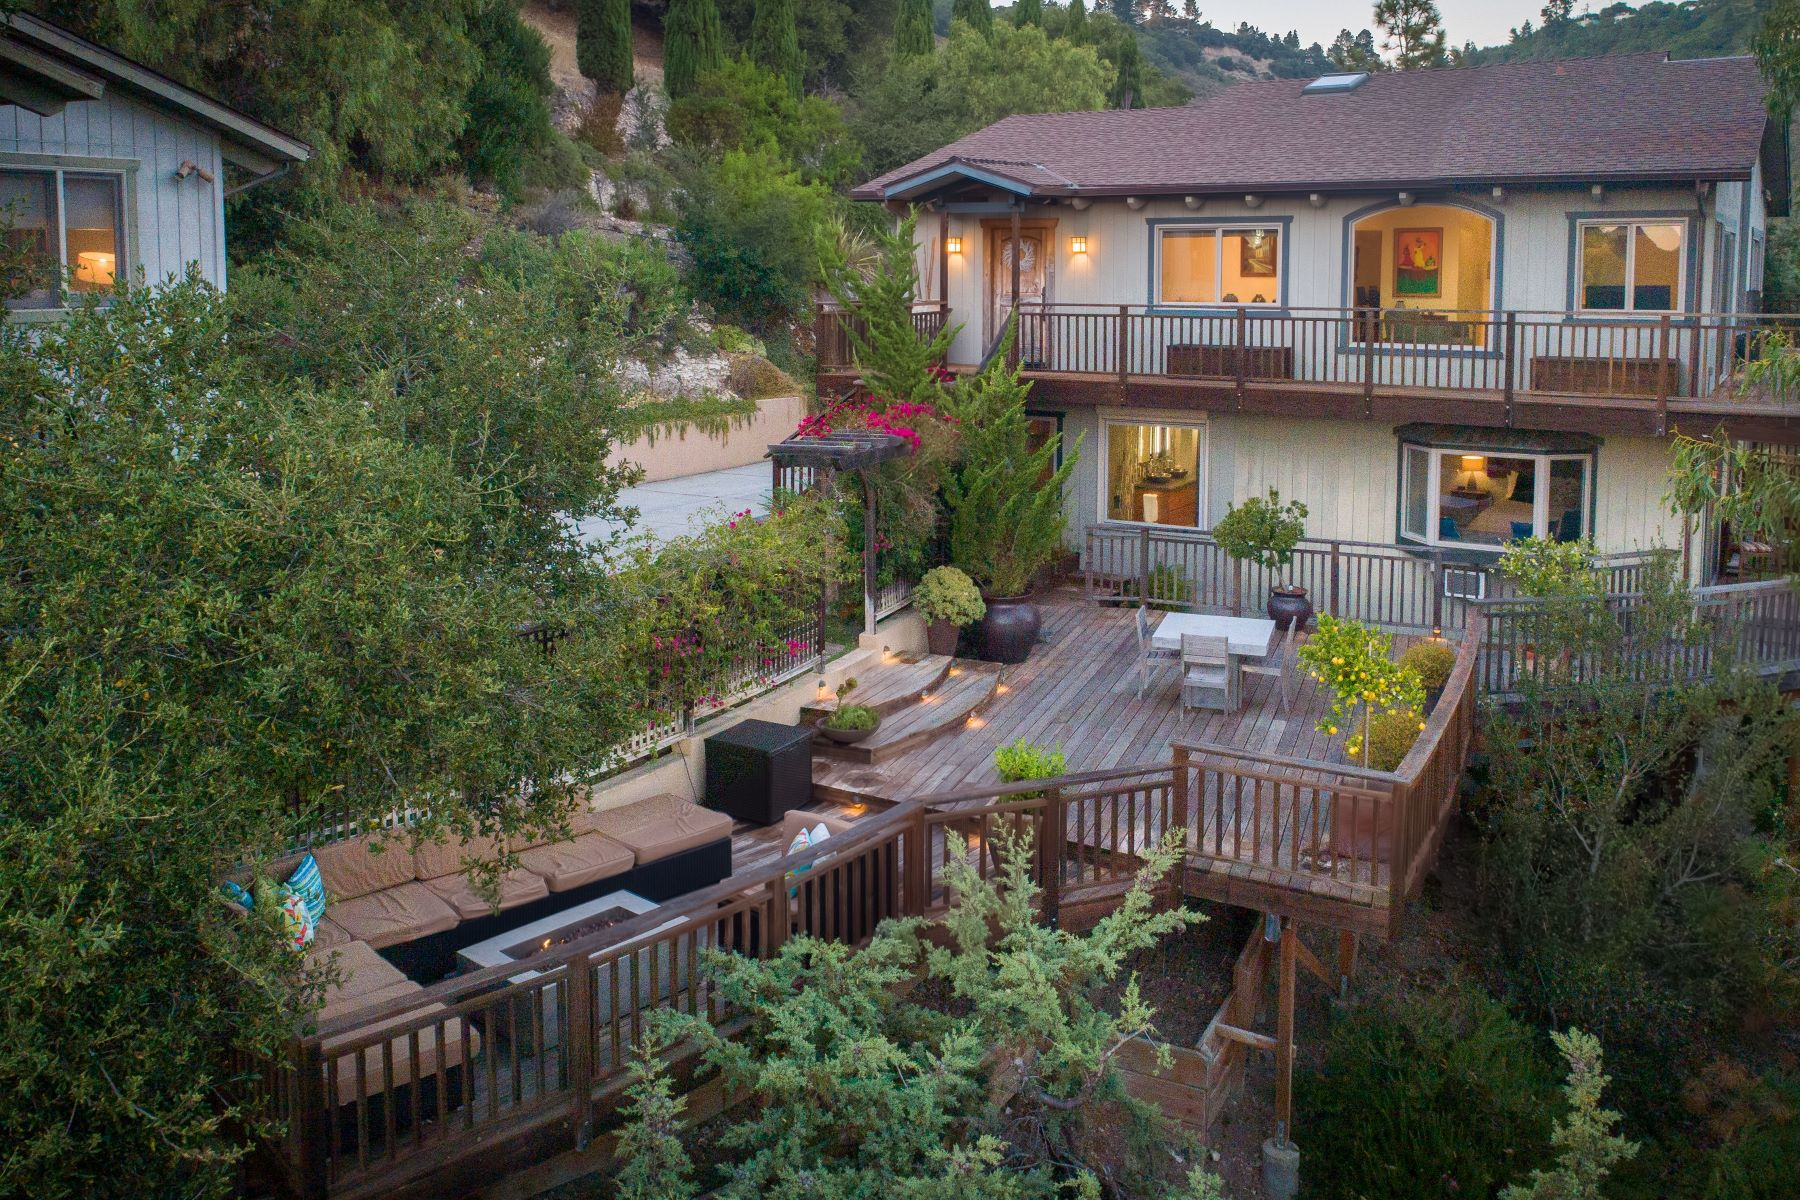 Single Family Homes for Active at 26140 Zdan Road Carmel Valley, California 93924 United States